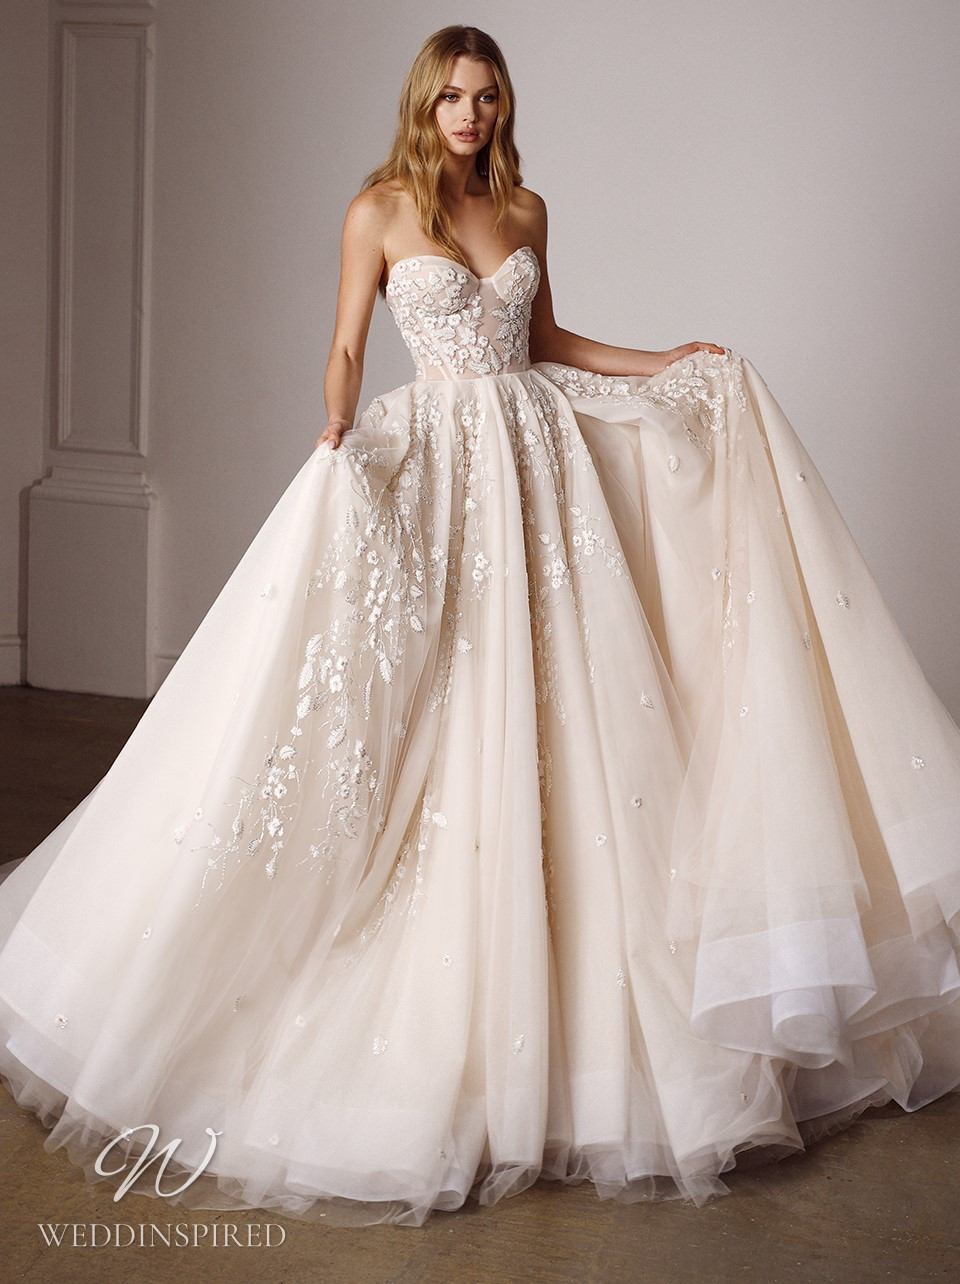 A Galia Lahav 2022 strapless blush lace and tulle A-line wedding dress